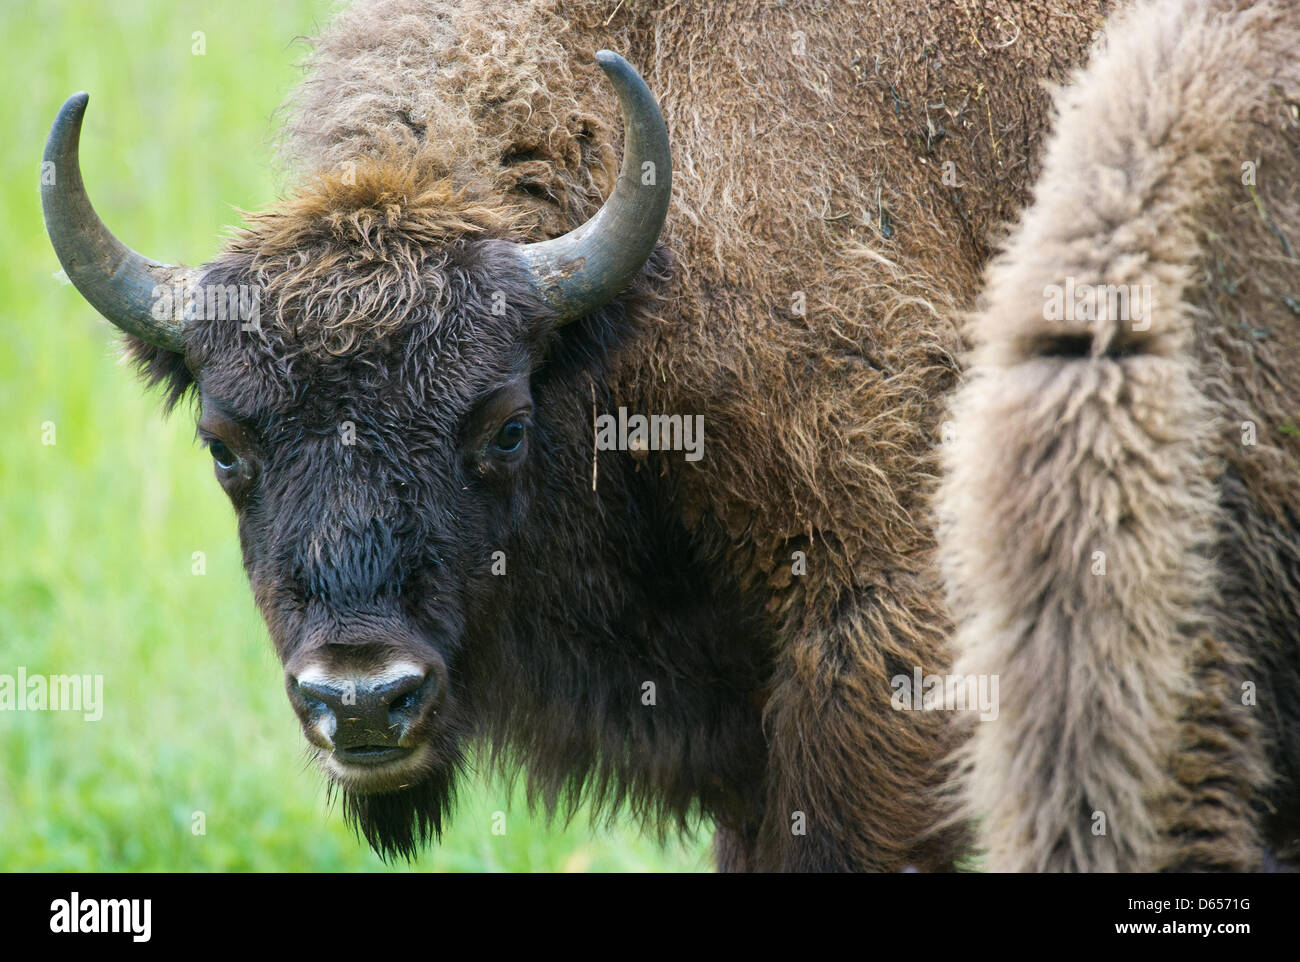 A European bison (Bison bonasus) stands on a meadow in the national park Unteres Odertal in Criewen, Germany, 05 - Stock Image